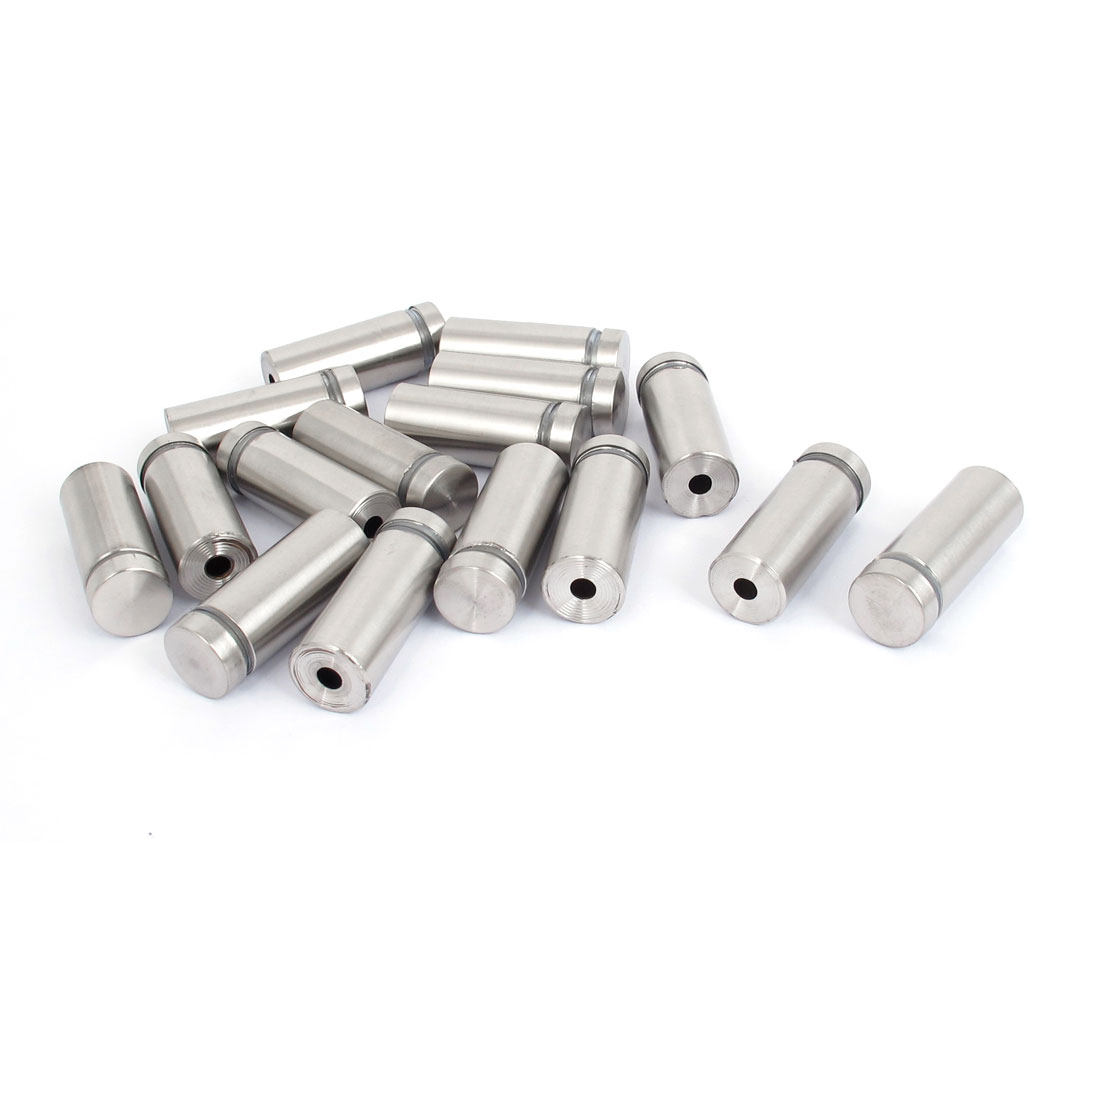 16mm x 40mm Stainless Steel Advertising Frameless Glass Standoff Pins 16pcs